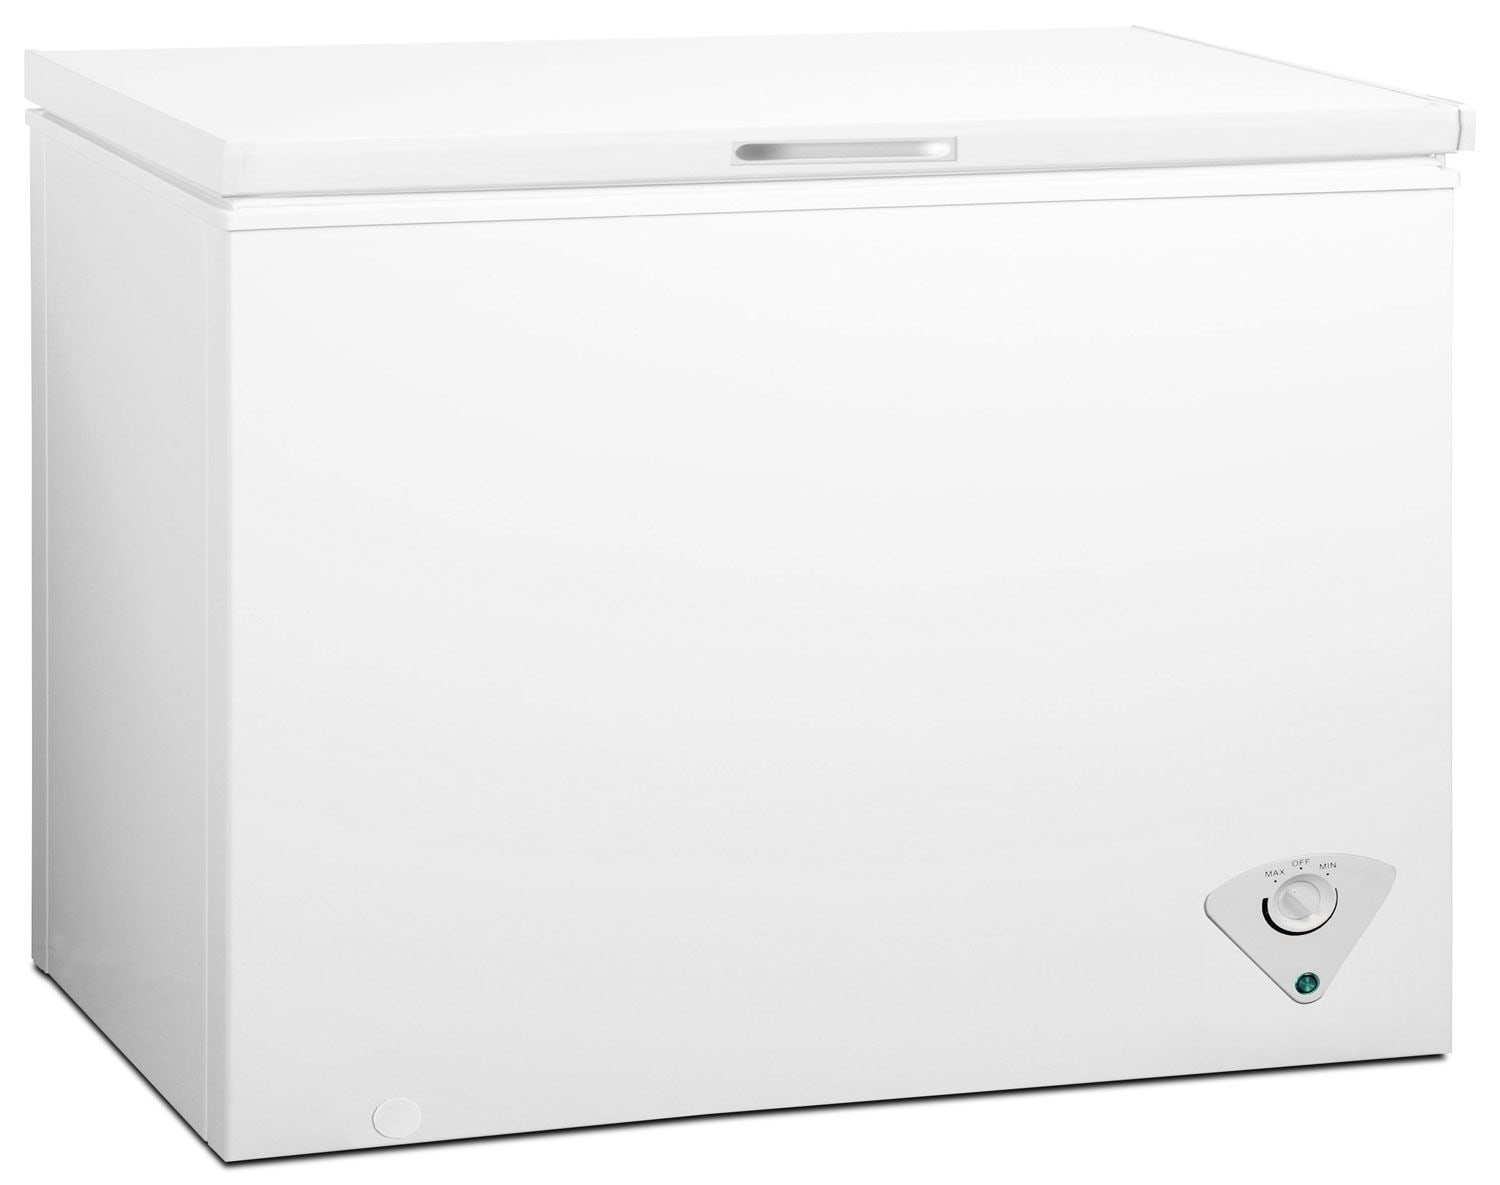 Refrigerators and Freezers - Midea 10.2 Cu. Ft. Chest Freezer - White